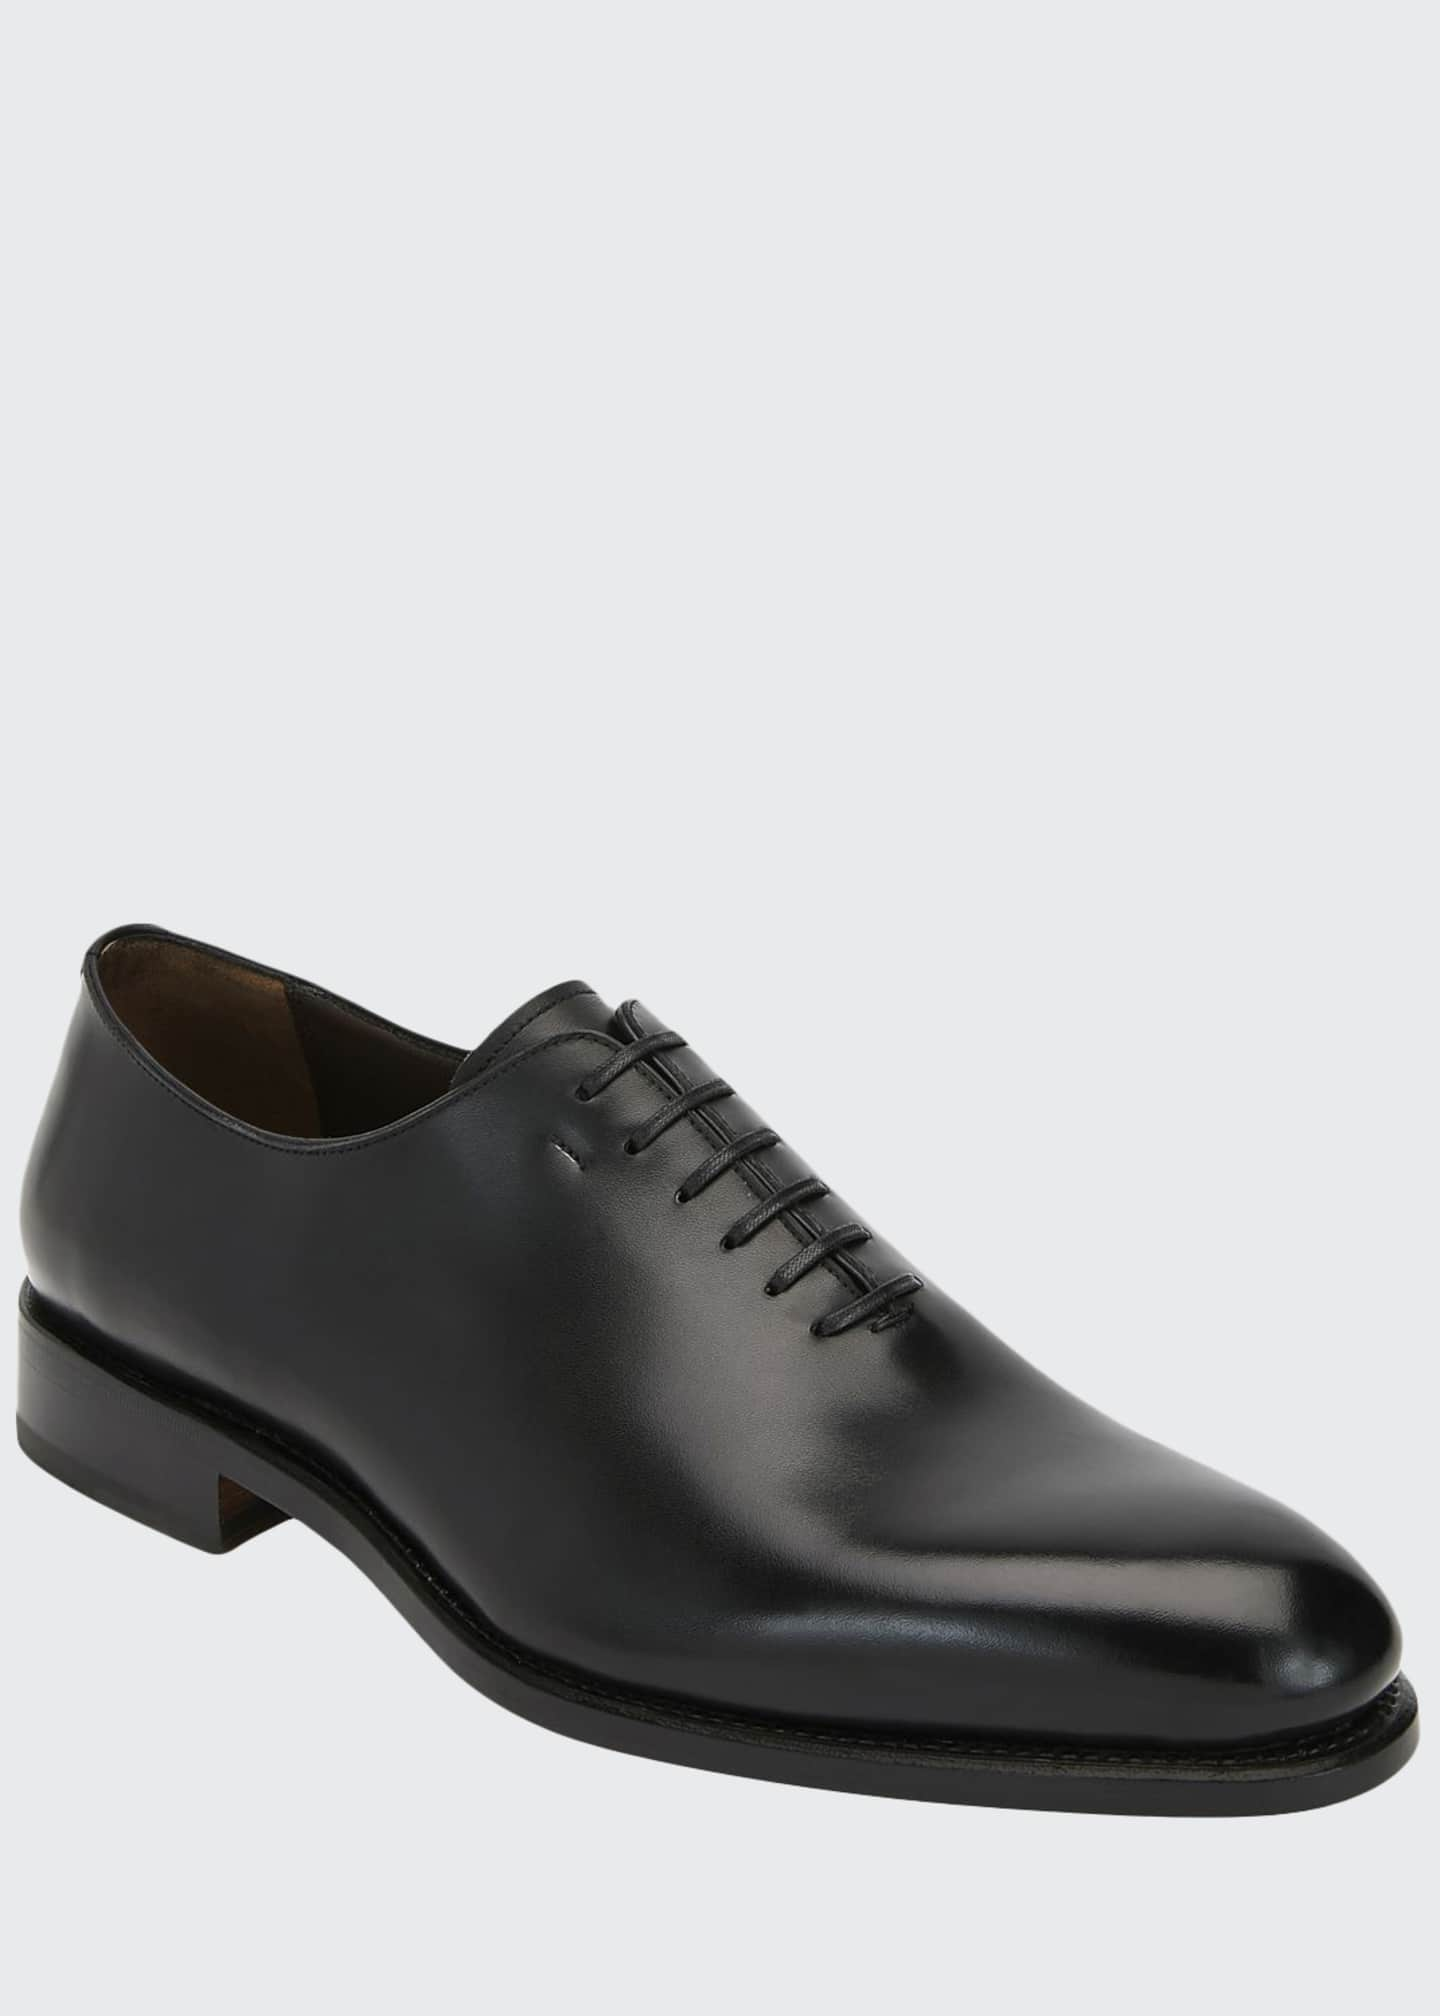 Image 1 of 3: Men's Amsterdam Calfskin Lace-Up Shoes